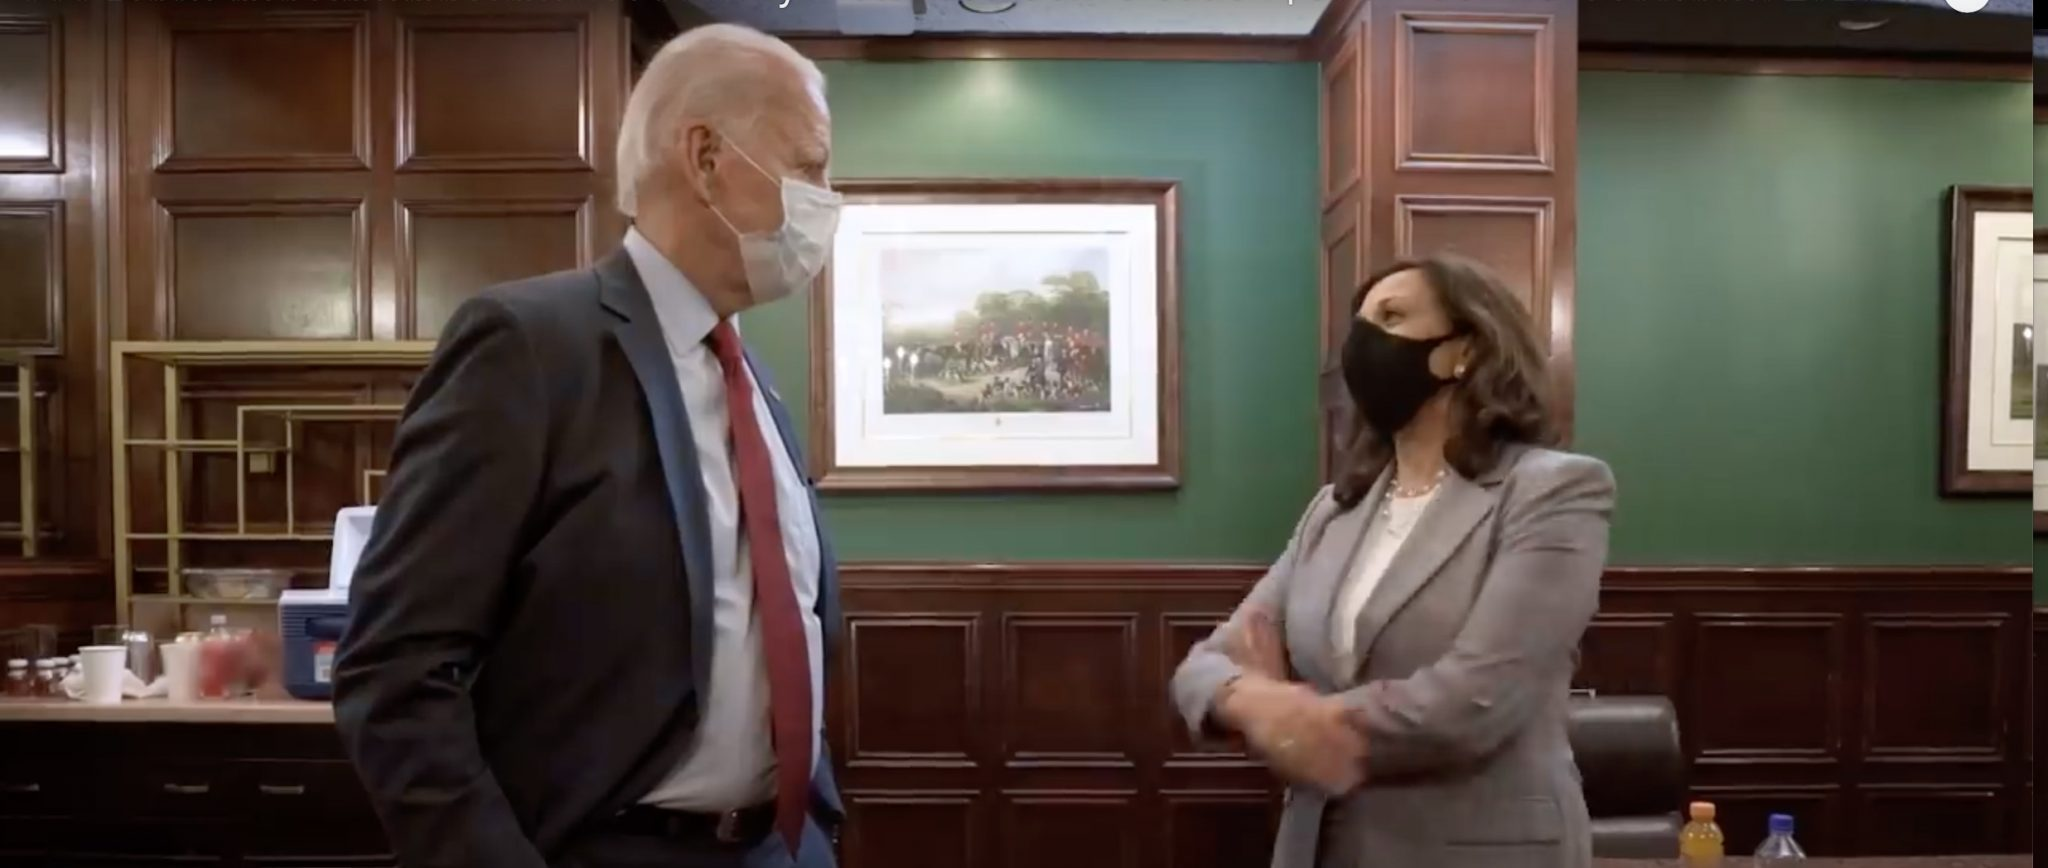 Biden-Harris Have a Big Problem in Pennsylvania | The American Spectator | USA News and PoliticsThe American Spectator | USA News and Politics